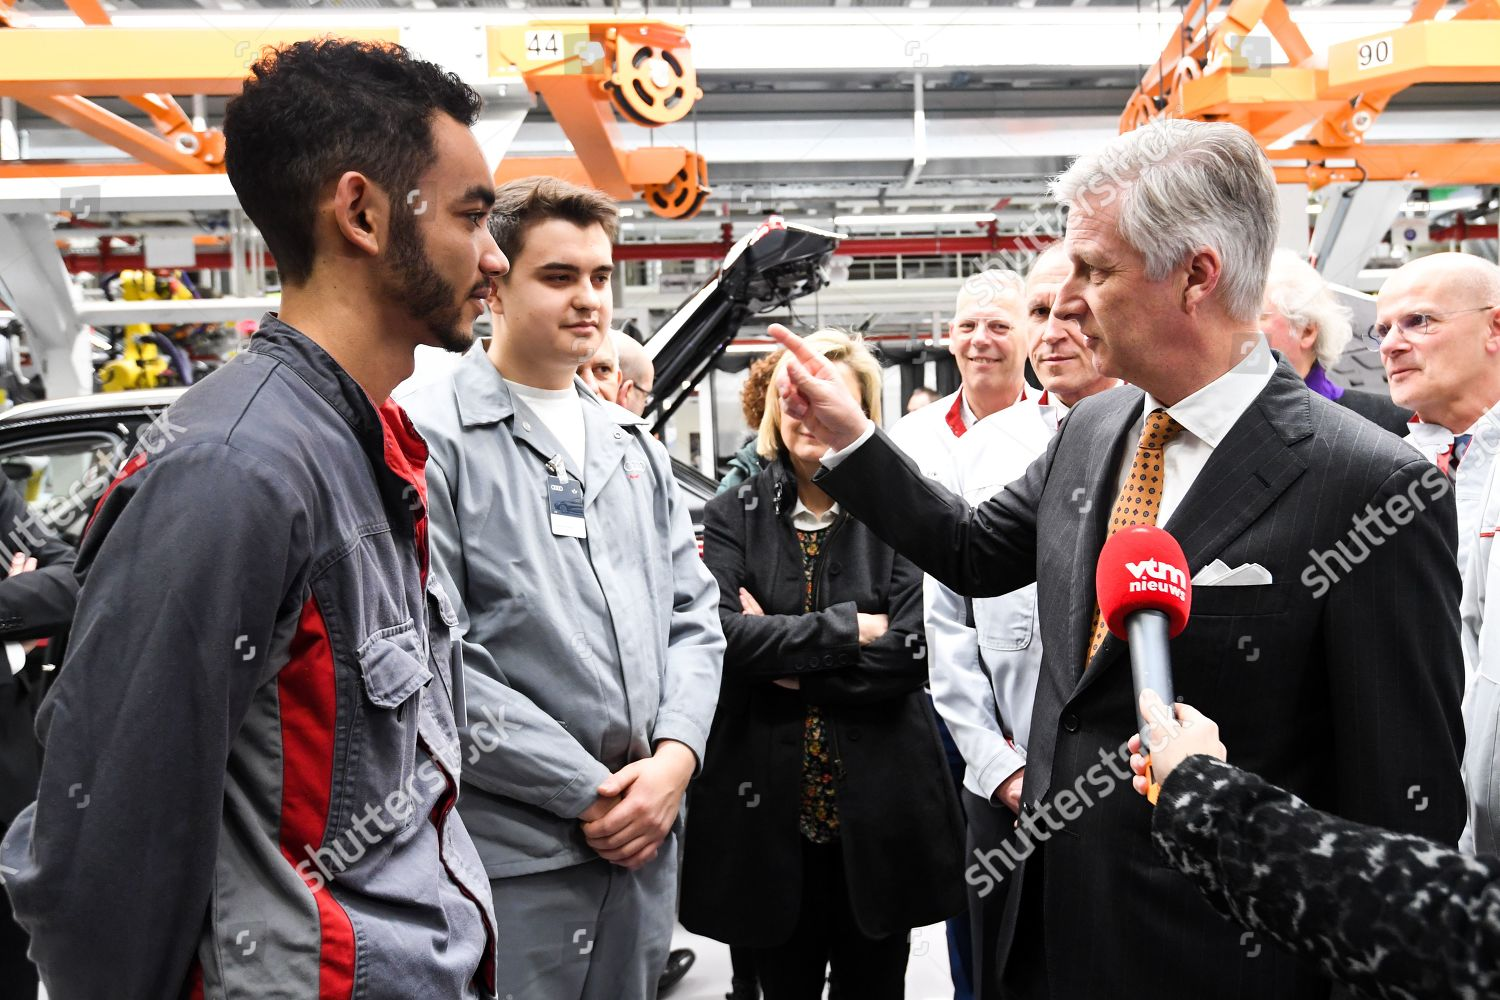 king-philippe-visits-audi-brussels-belgium-shutterstock-editorial-10102578a.jpg